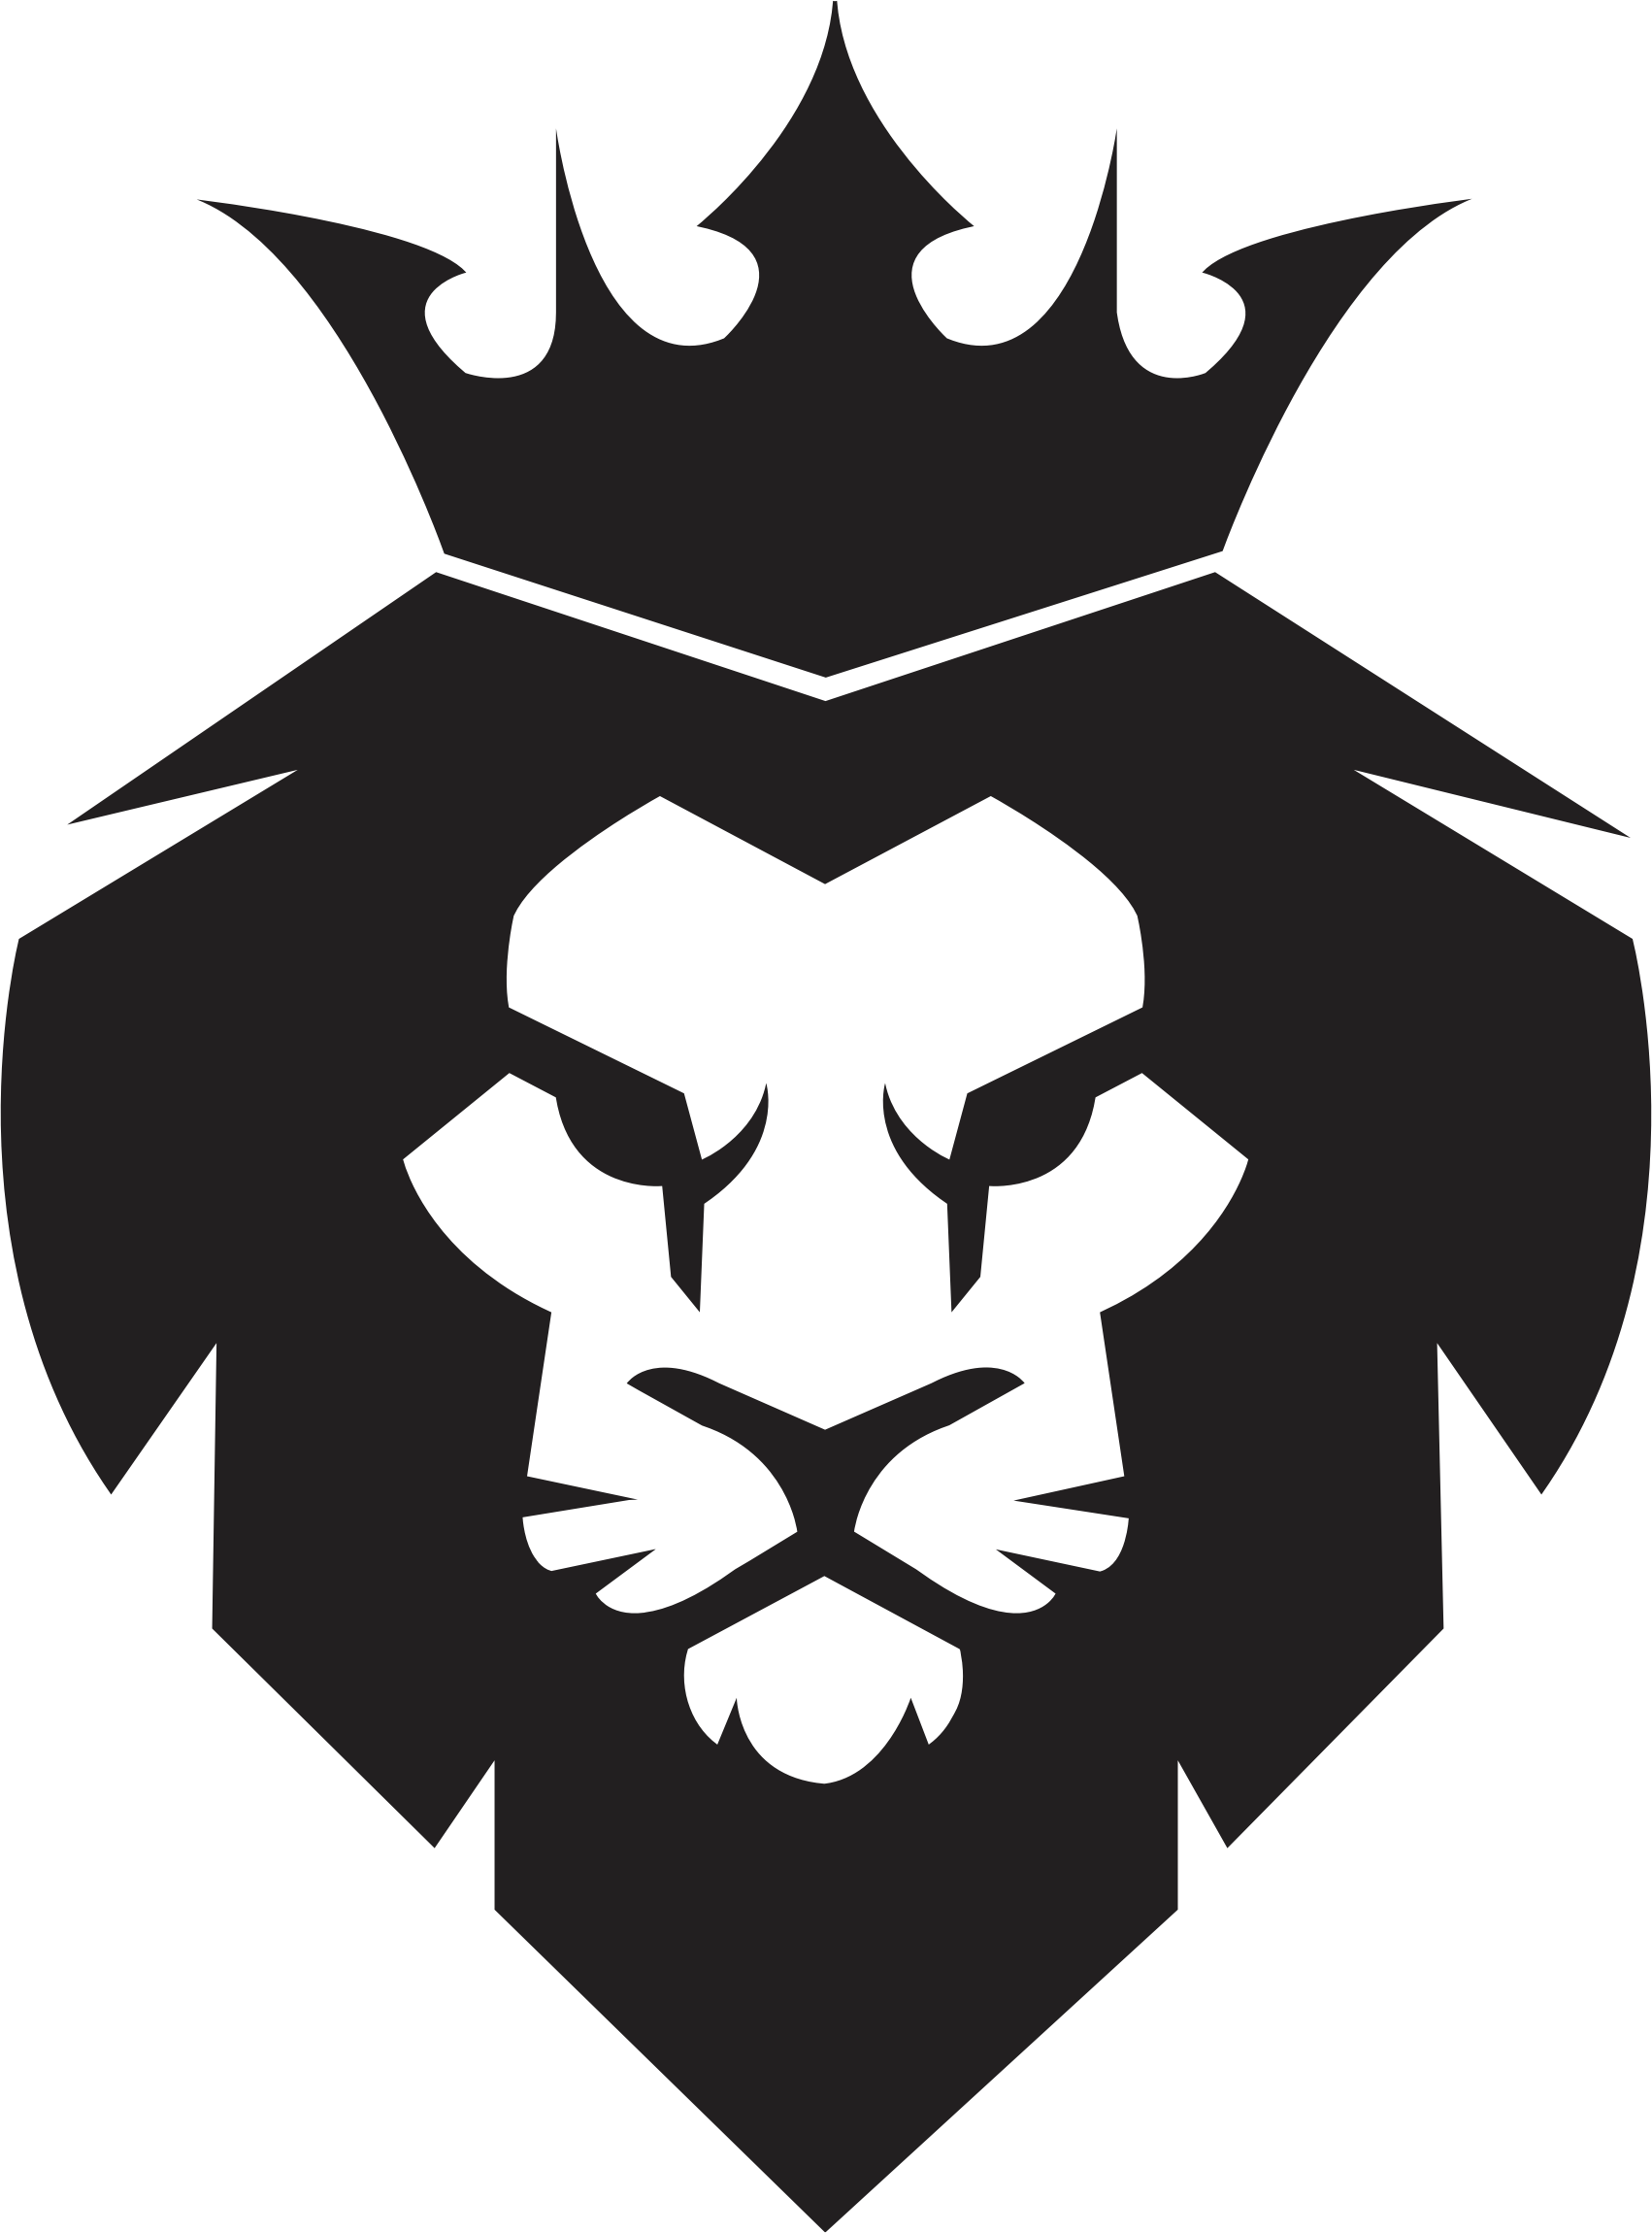 African king crown clipart vector royalty free download Clipart - Lion King vector royalty free download